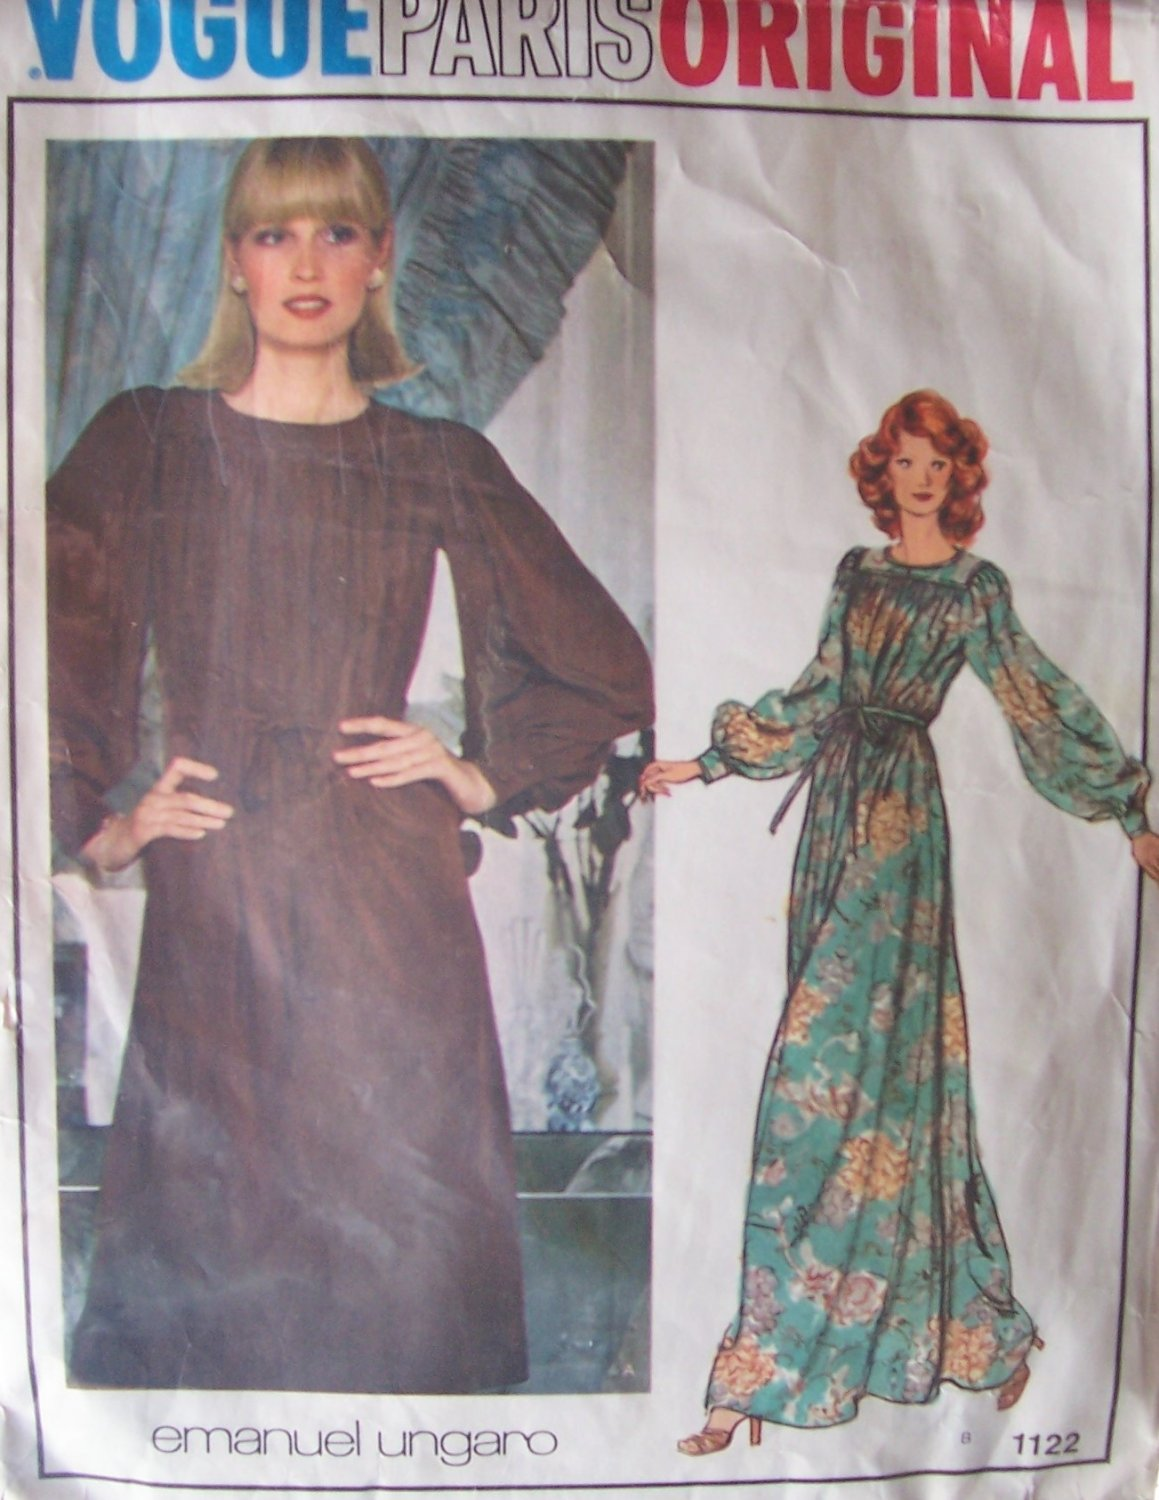 Vintage 70�s Vogue 1122 Emanuel Ungaro Paris Original Evening Maxi Dress Pattern Size 14 Bust 36